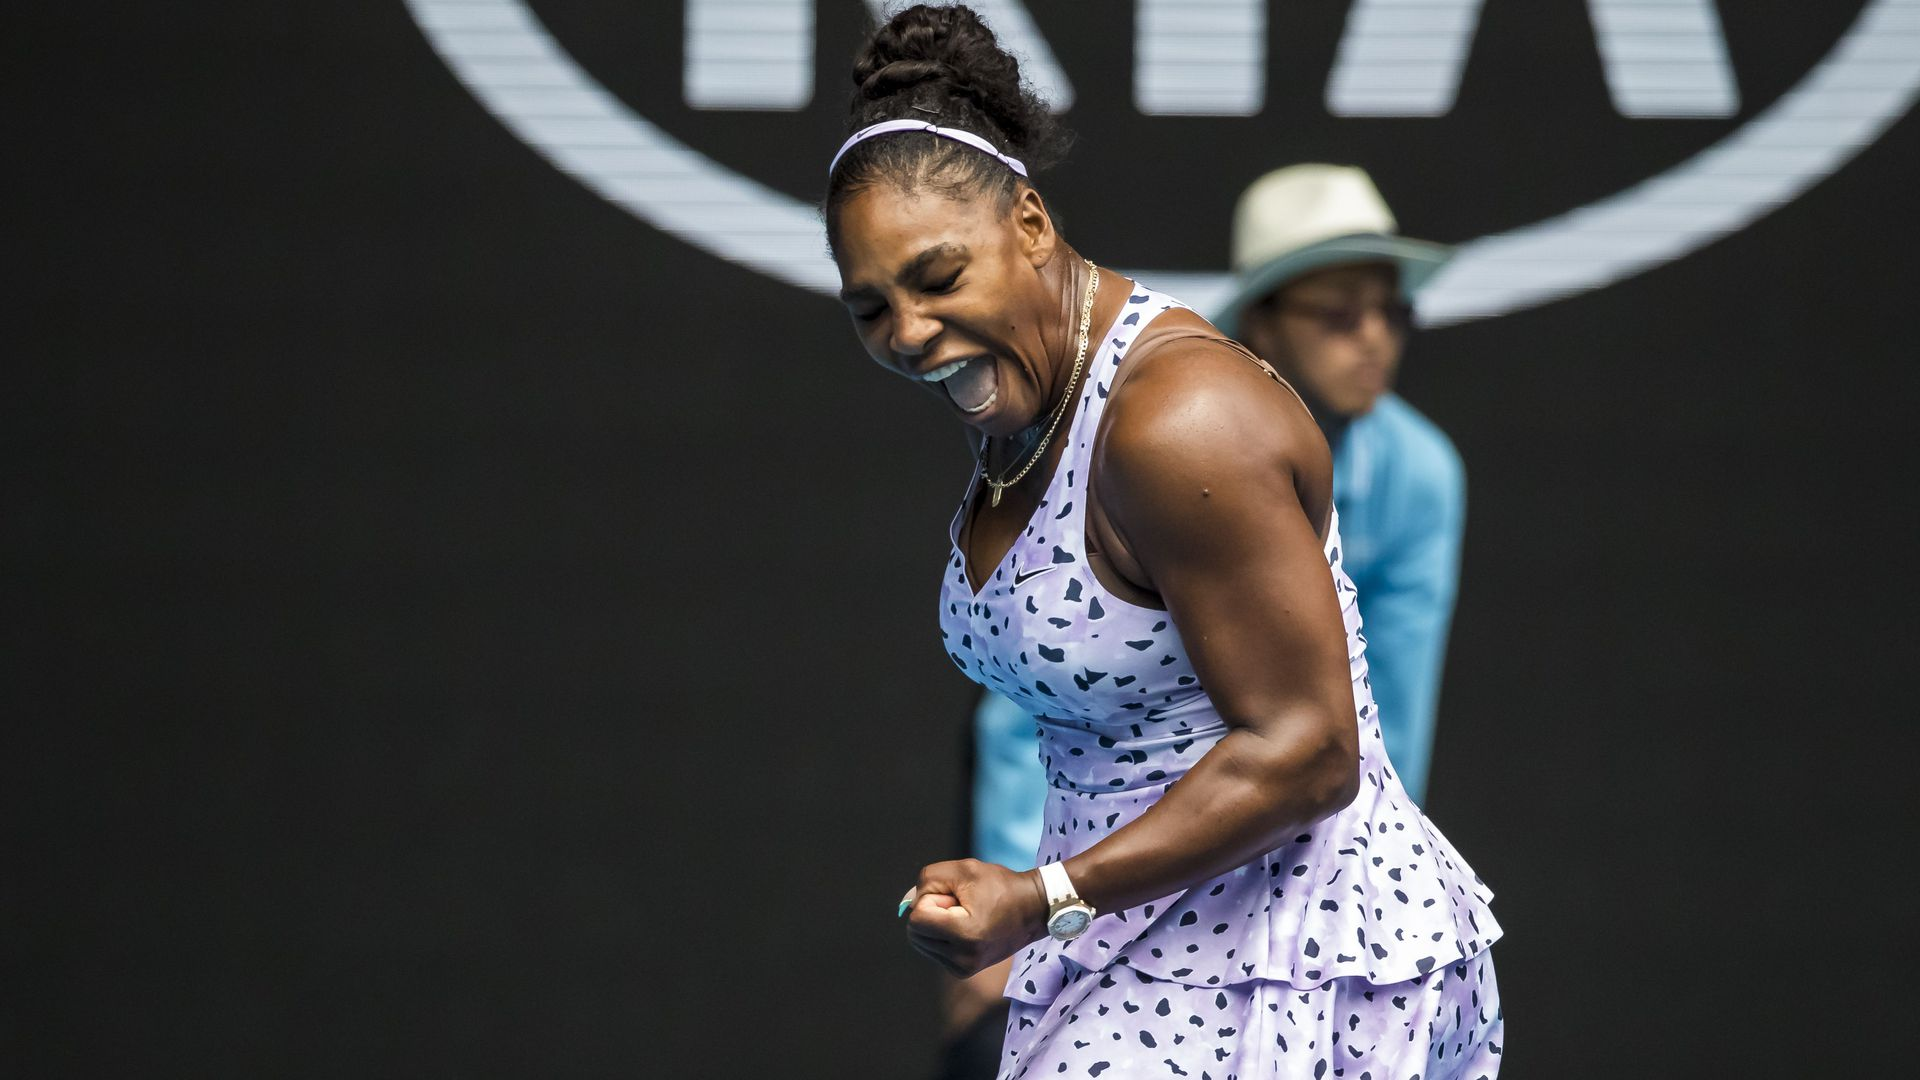 Australian Open 2020: Serena Williams one win shy of tying Margaret Court's record